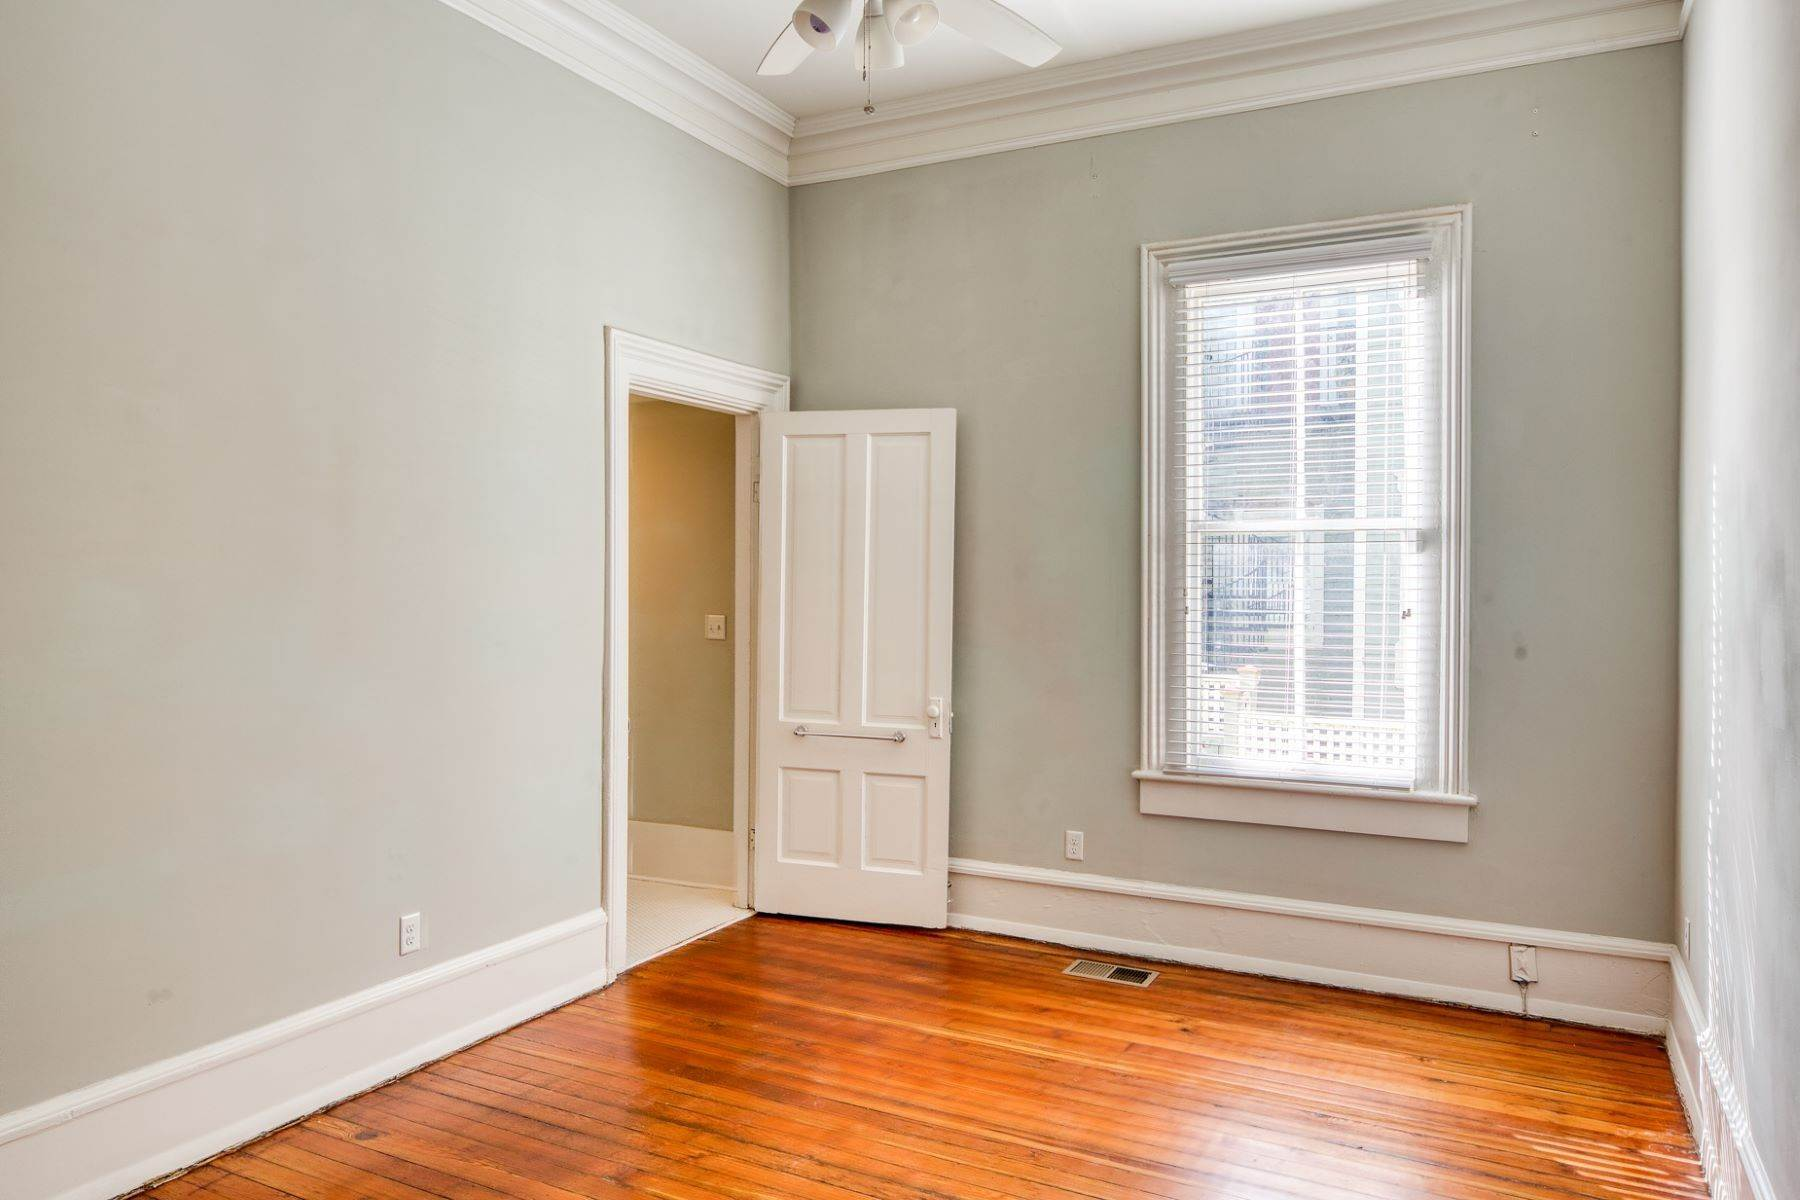 12. Property for Sale at Stunning Six Unit Victorian Apartment Building Near Forsyth Park 109 E Duffy Street Savannah, Georgia 31401 United States